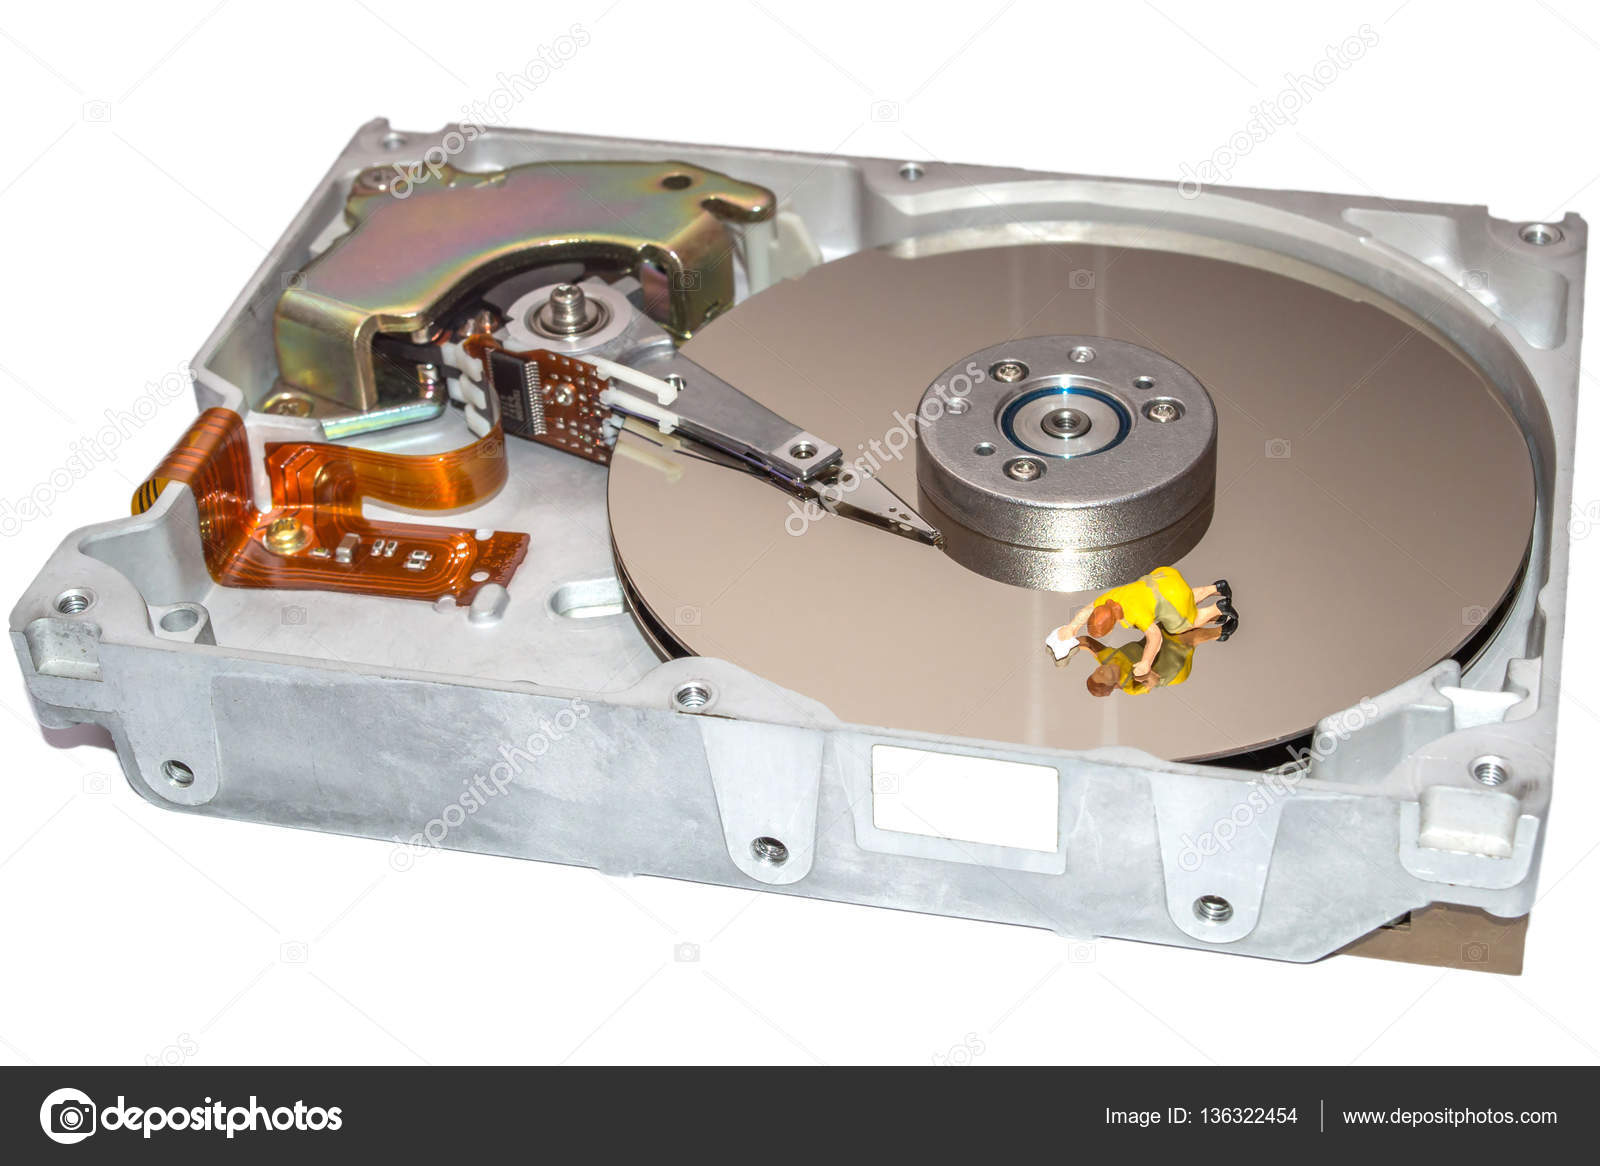 how to clean hard disk